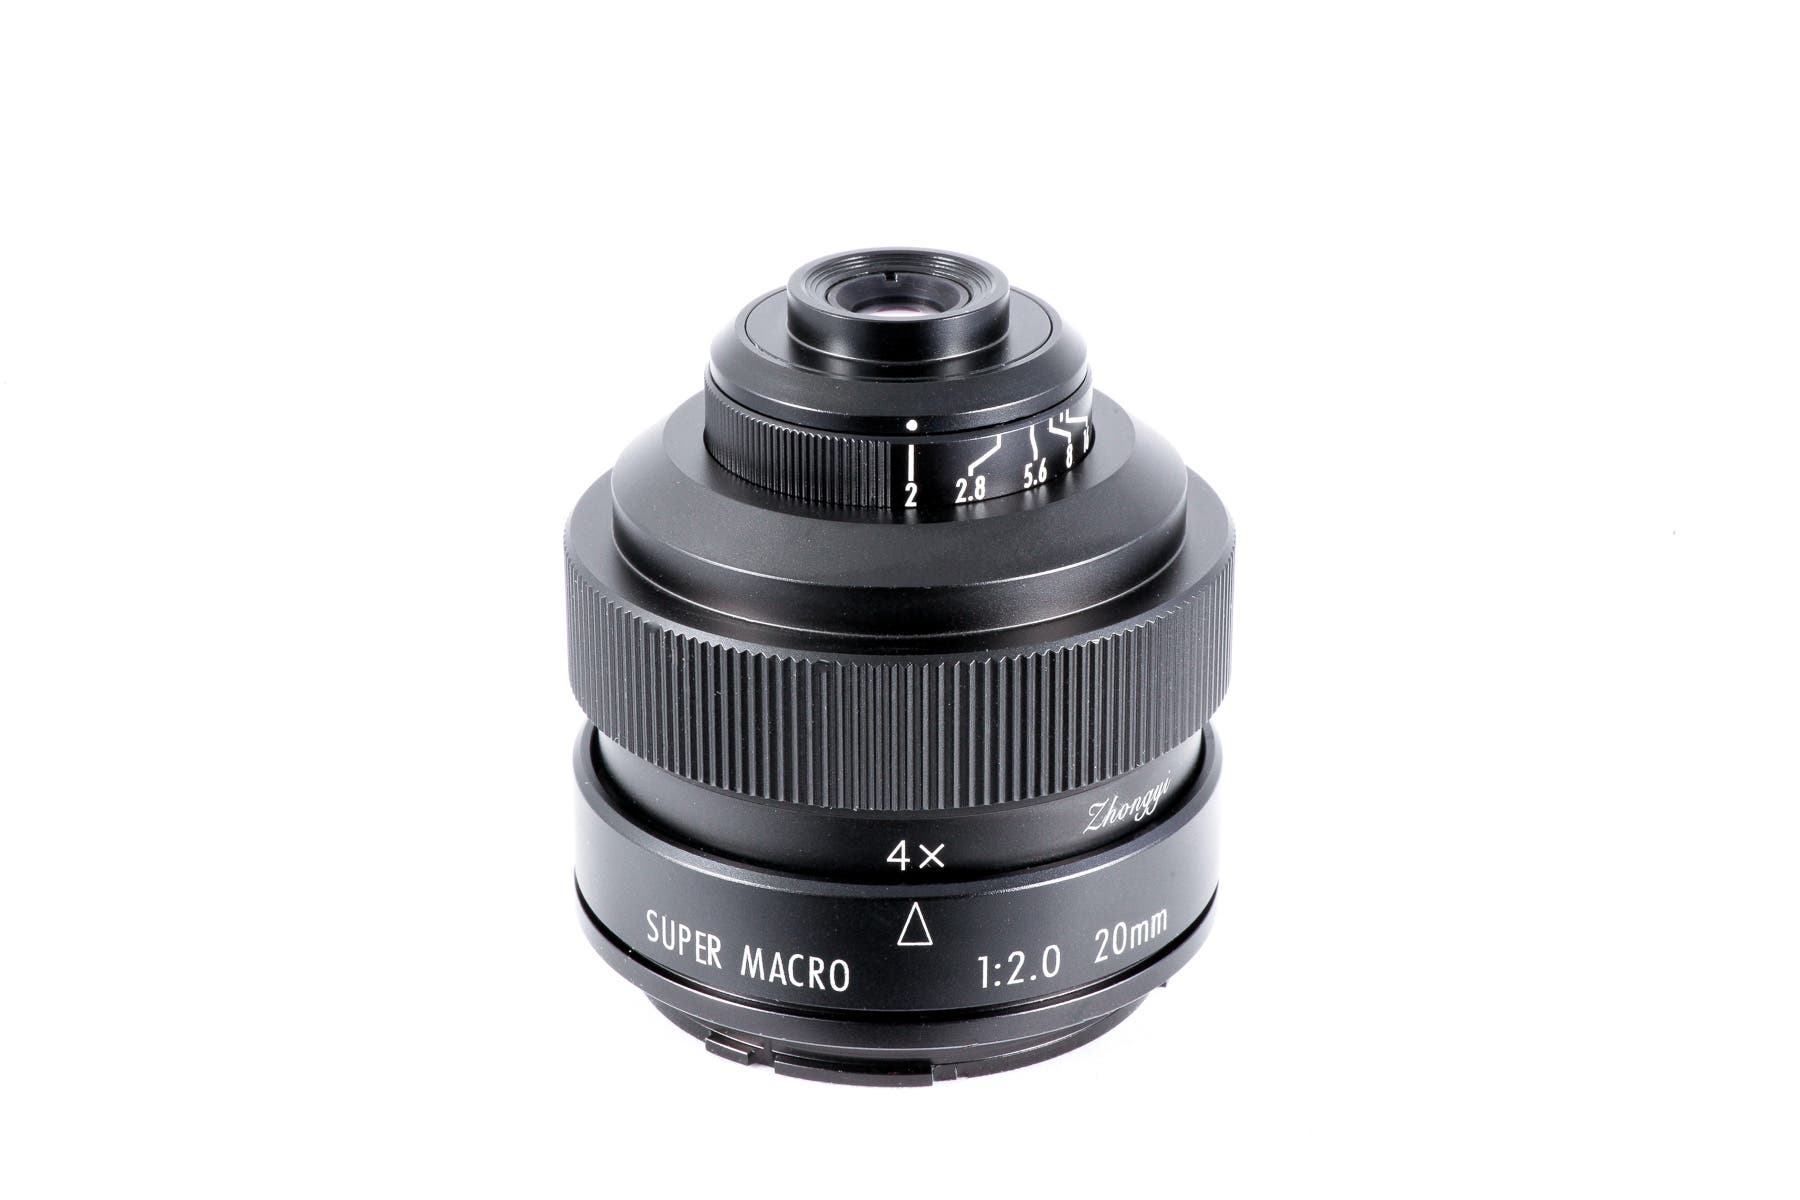 New Zhongyi Mitakon 20mm f2 Macro Lens Can Achieve 4.5x Magnification